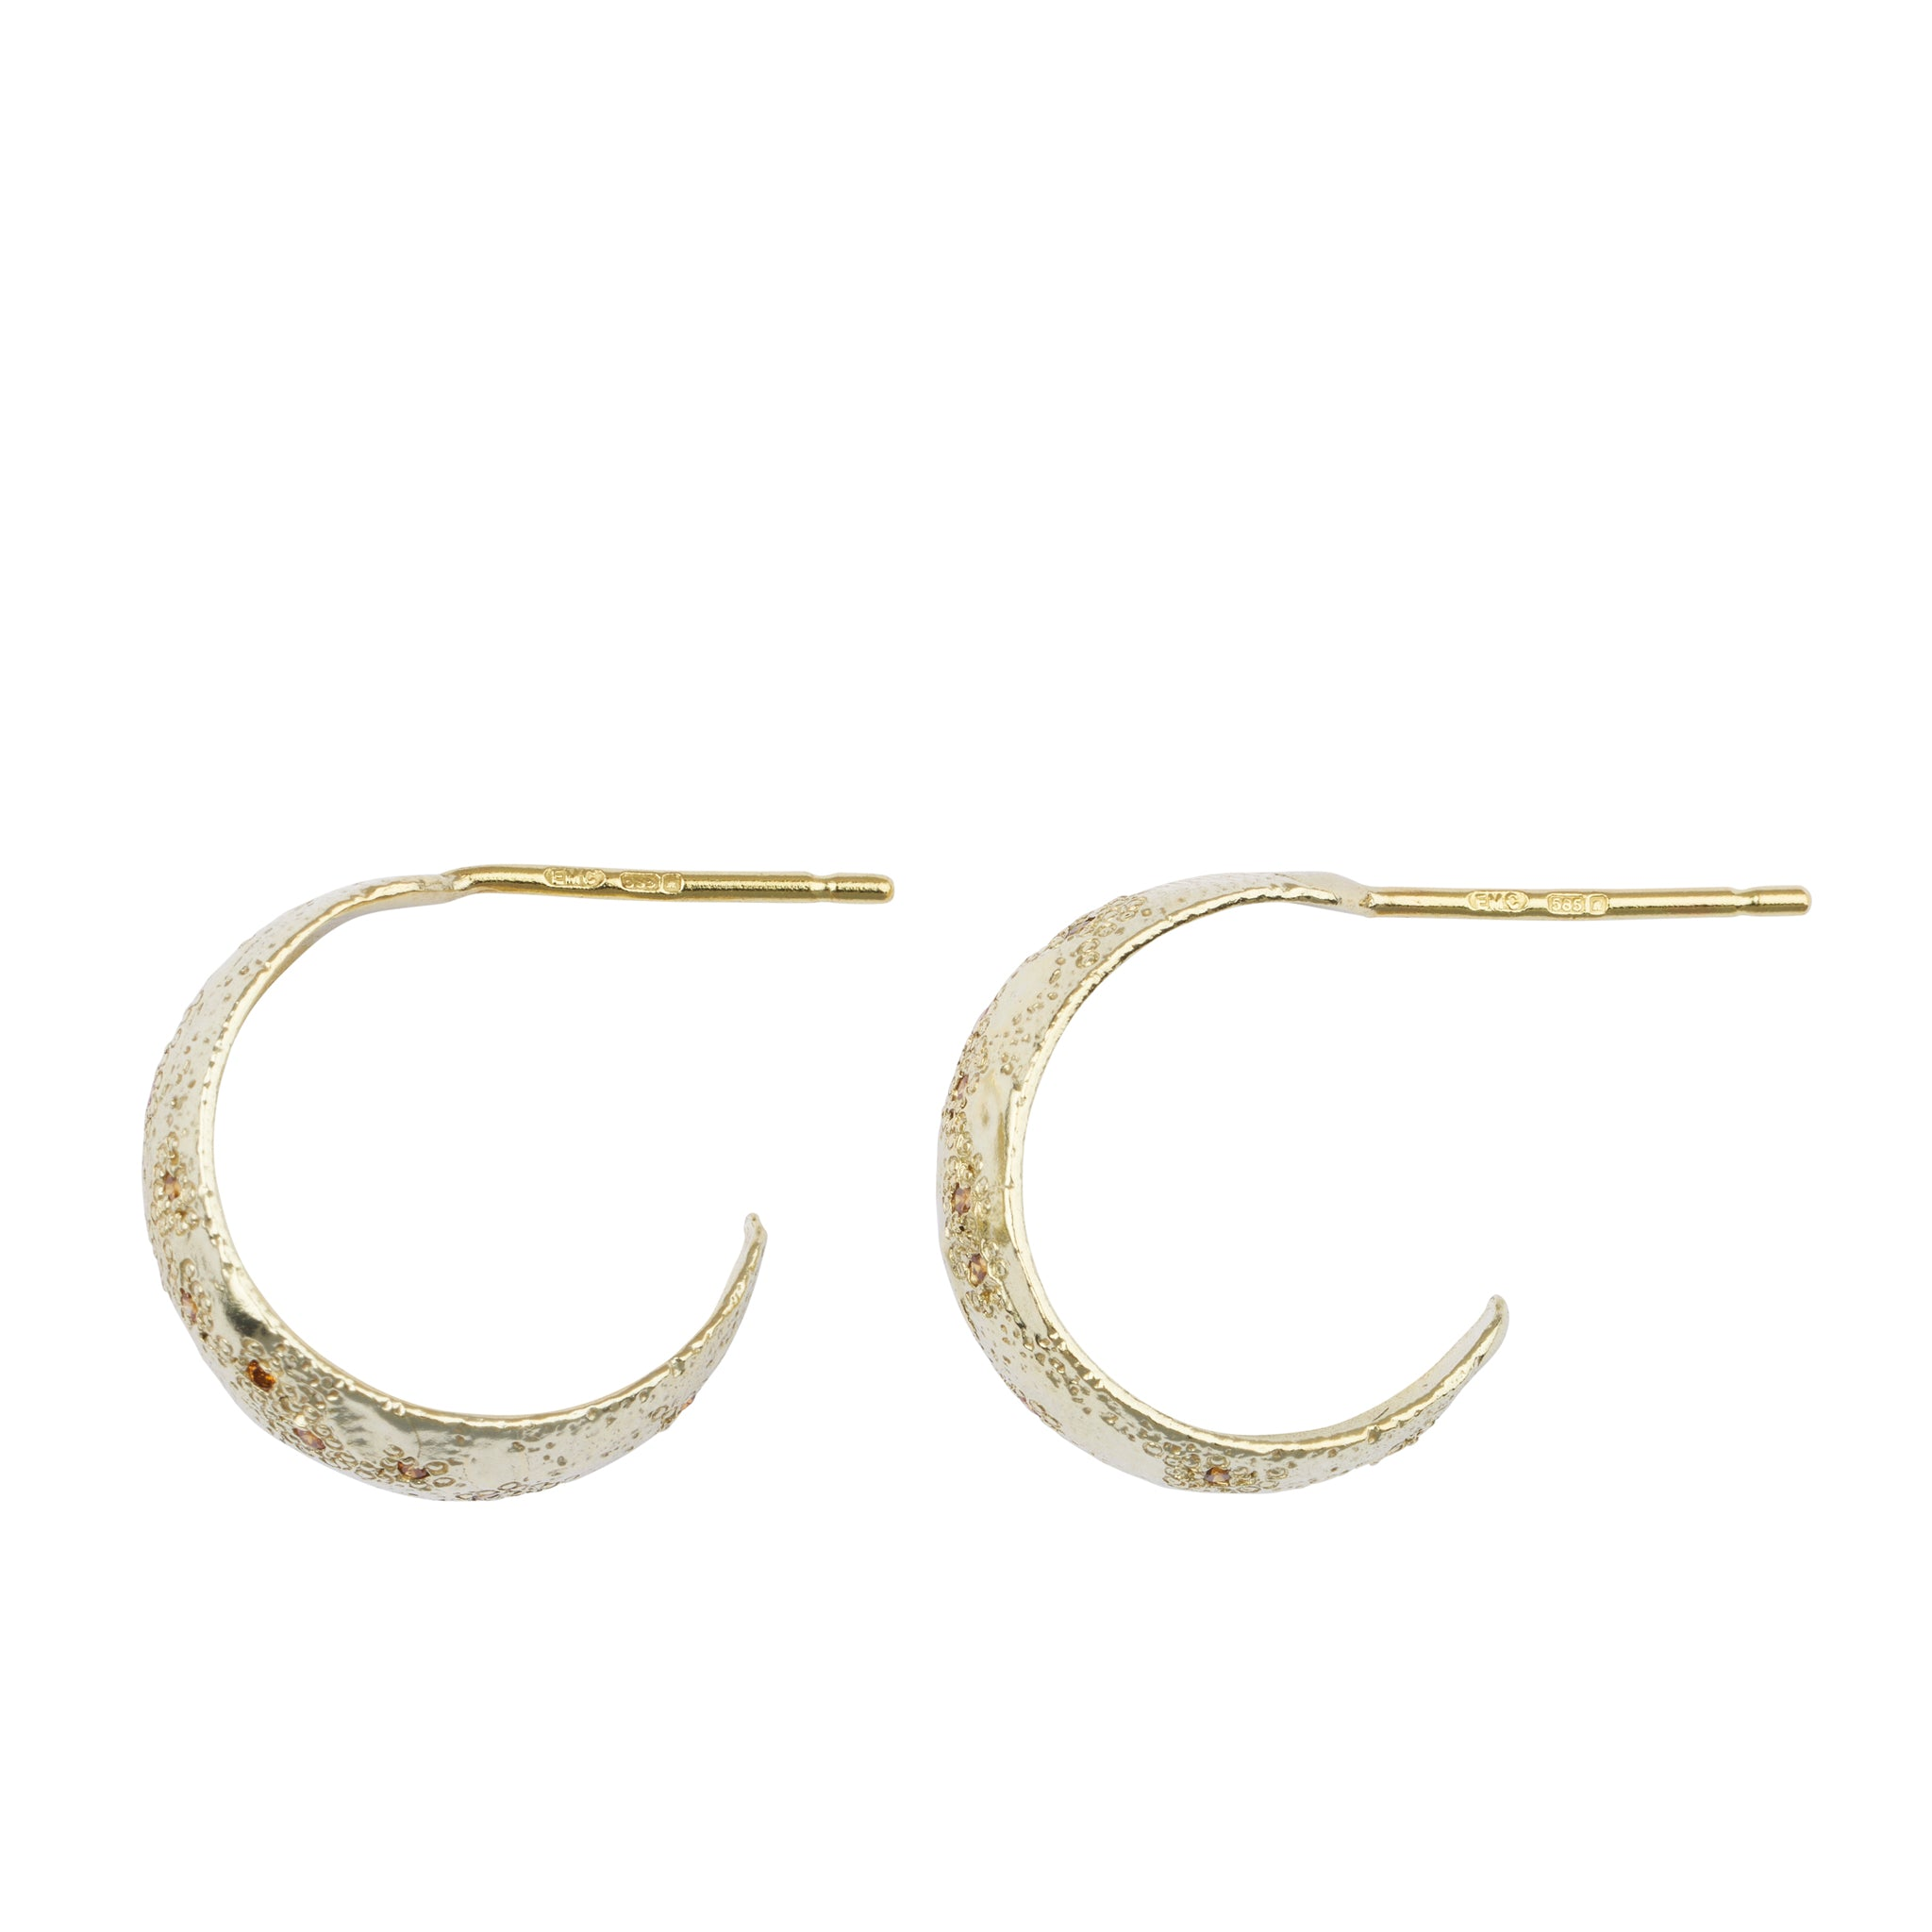 gold and diamond hoop earrings ellis mhairi cameron